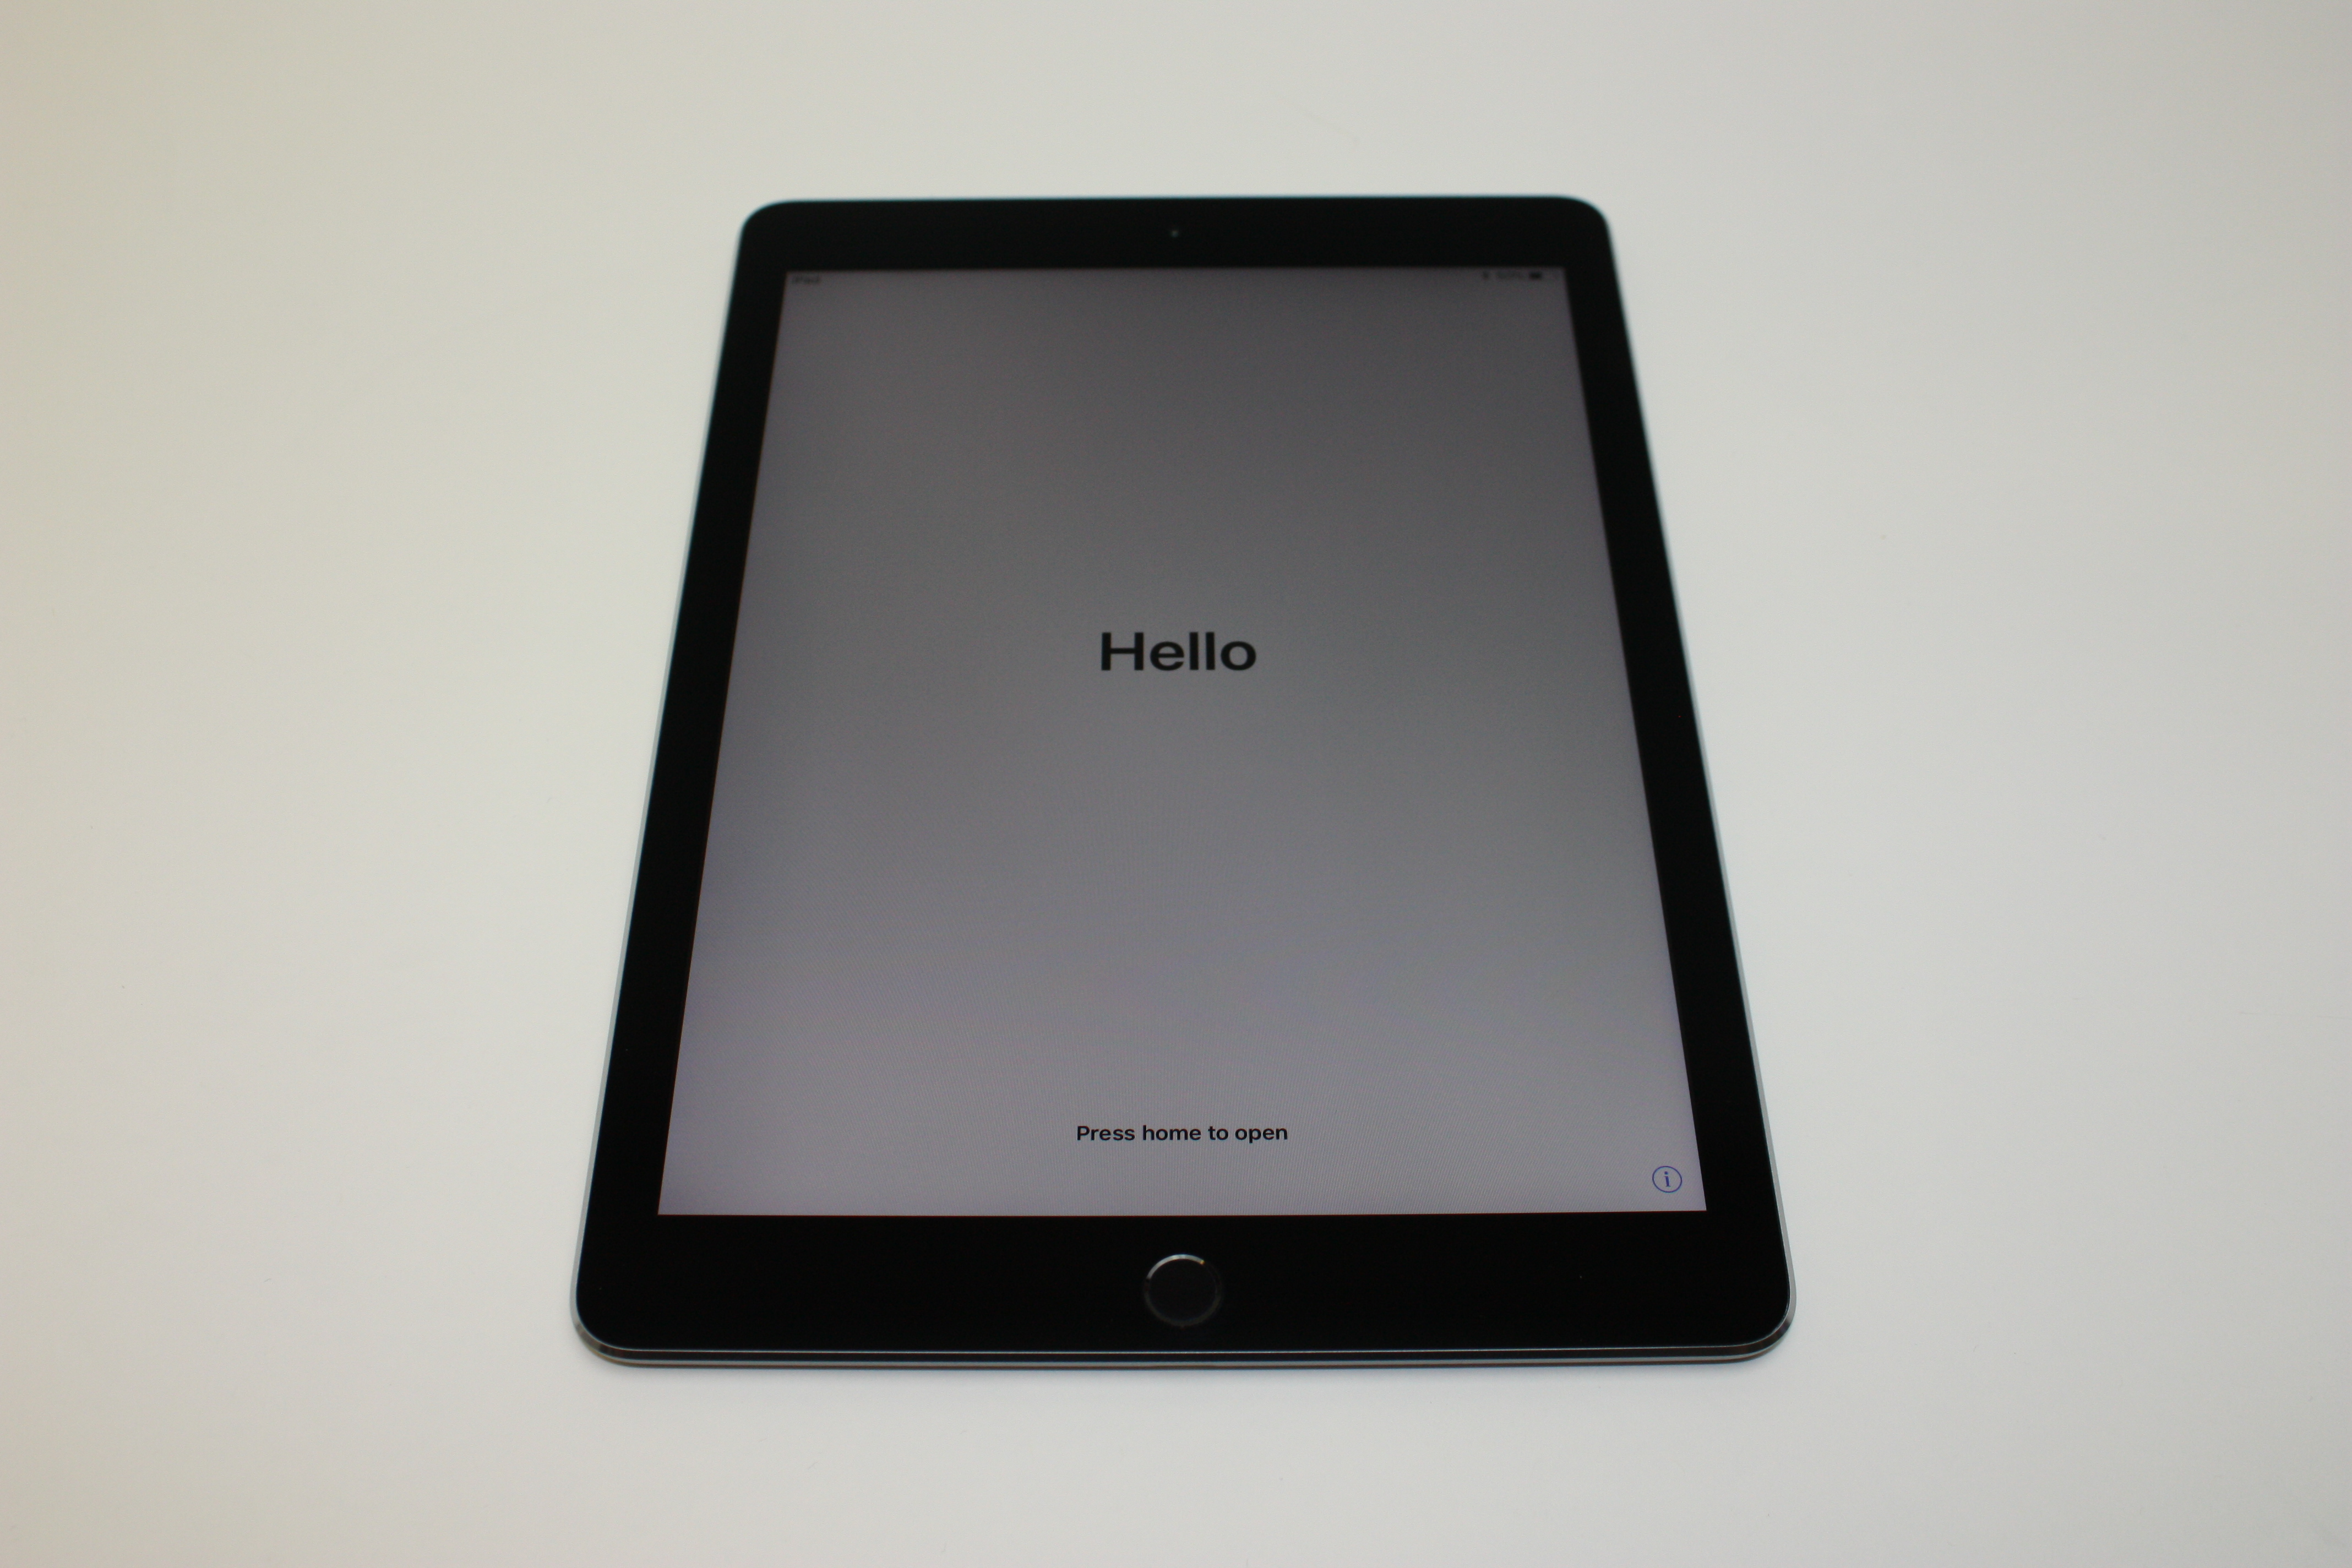 iPad Pro 9.7-inch (Wi-Fi), 32 GB, Space Grey, Product age: 22 months, image 1